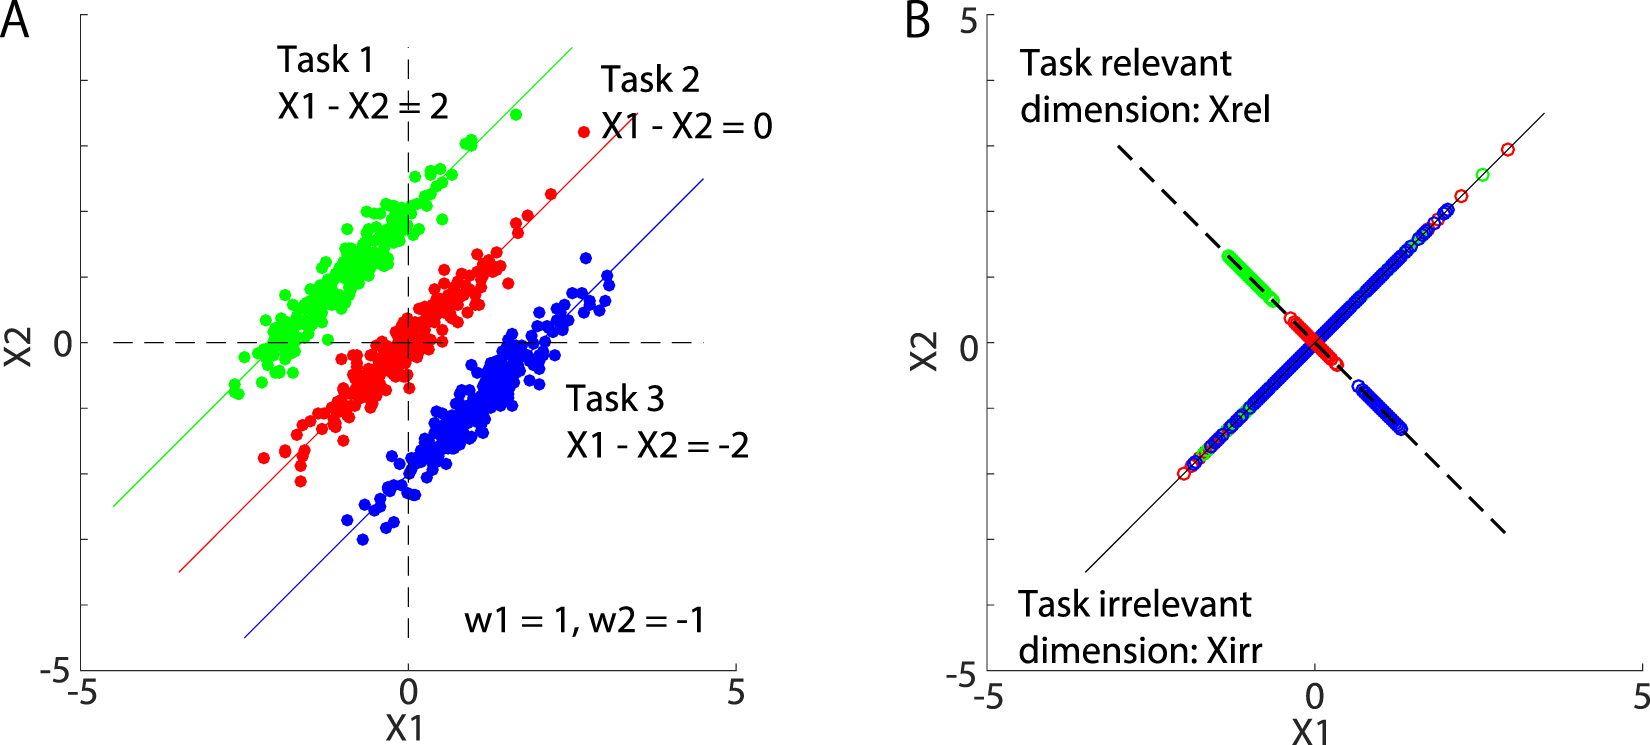 Decomposing motion that changes over time into task-relevant